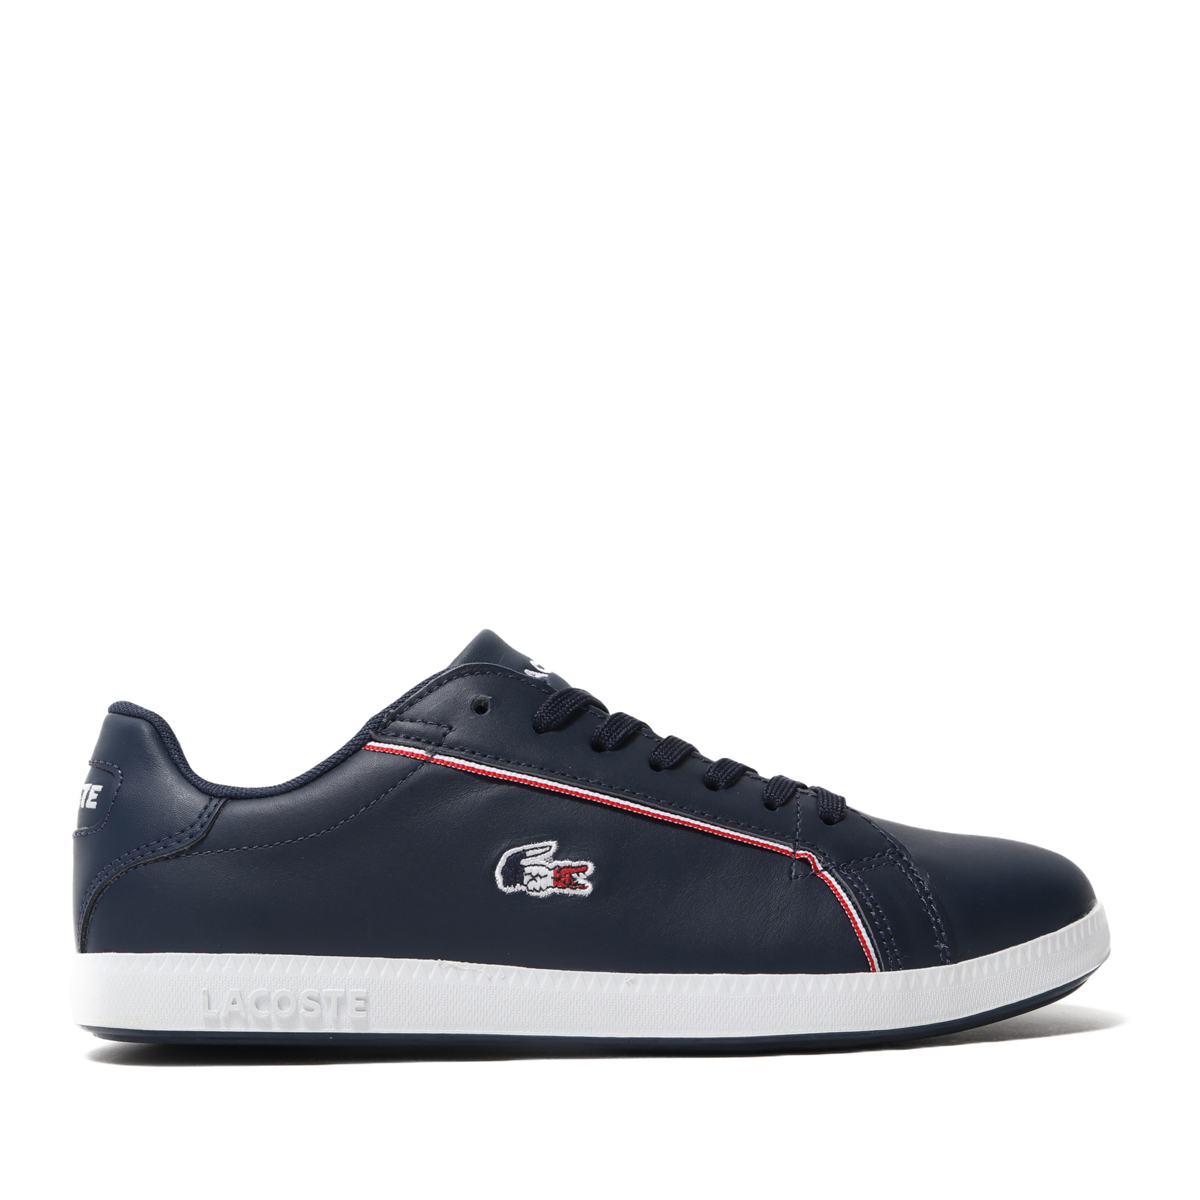 LACOSTE GRADUATE 119 2(NVY/WHT/RED)(ラコステ グラジュエート 119 2)【レディース】【スニーカー】【19SP-I】